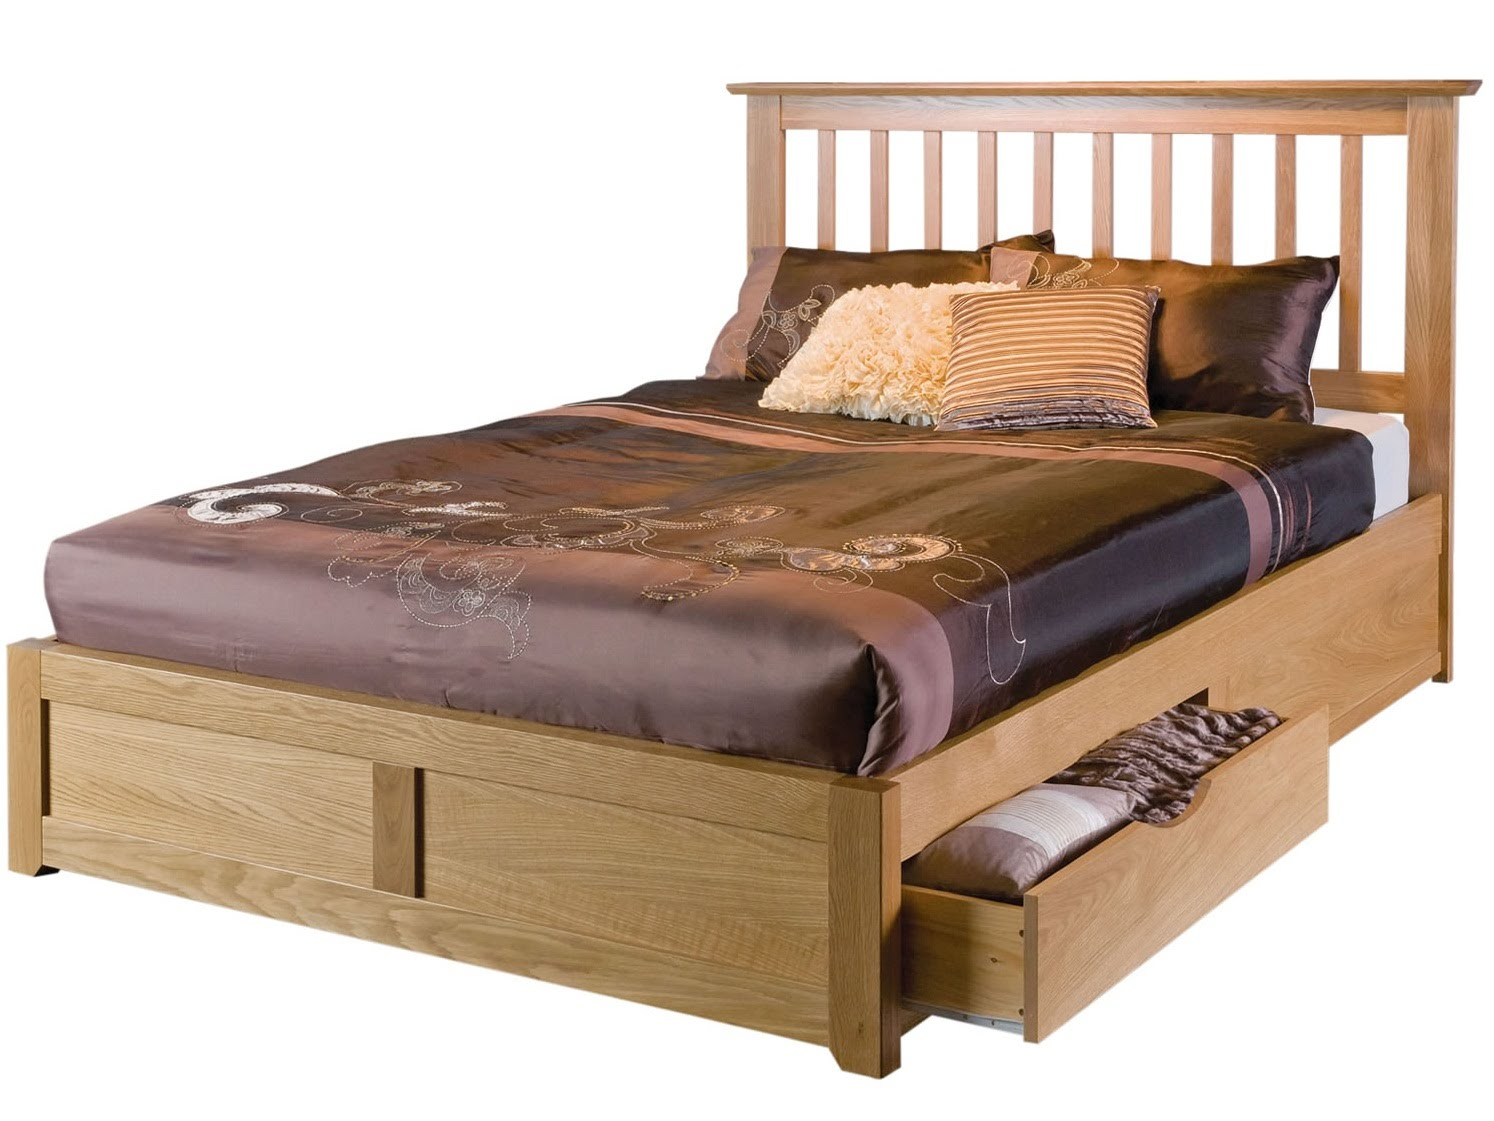 wooden bed frames - youtube hxlqkov